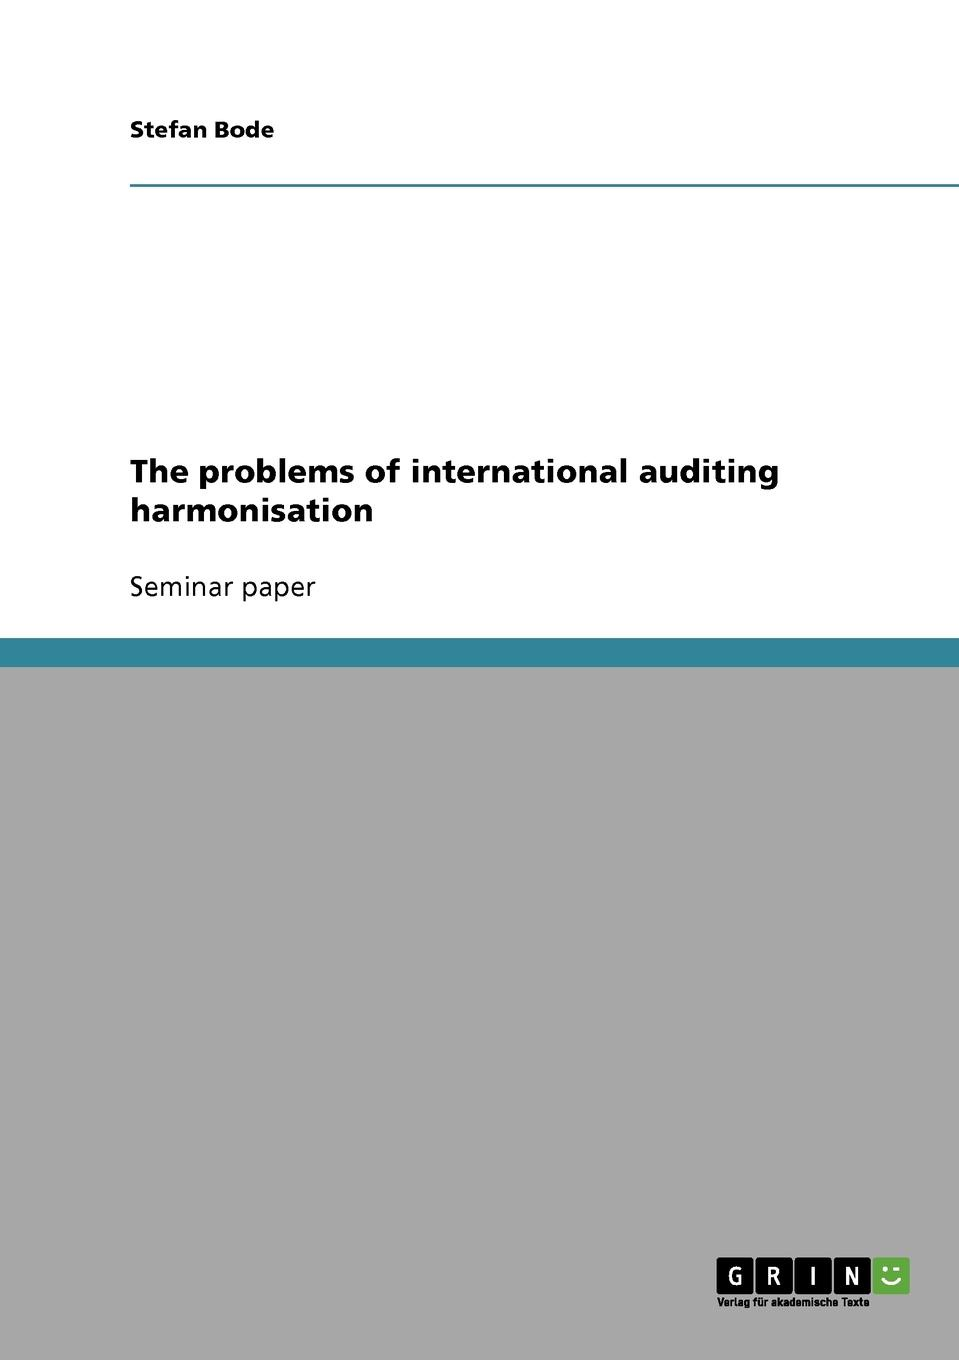 Stefan Bode The problems of international auditing harmonisation asokan anandarajan gary kleinman international auditing standards in the united states comparing and understanding standards for isa and pcaob